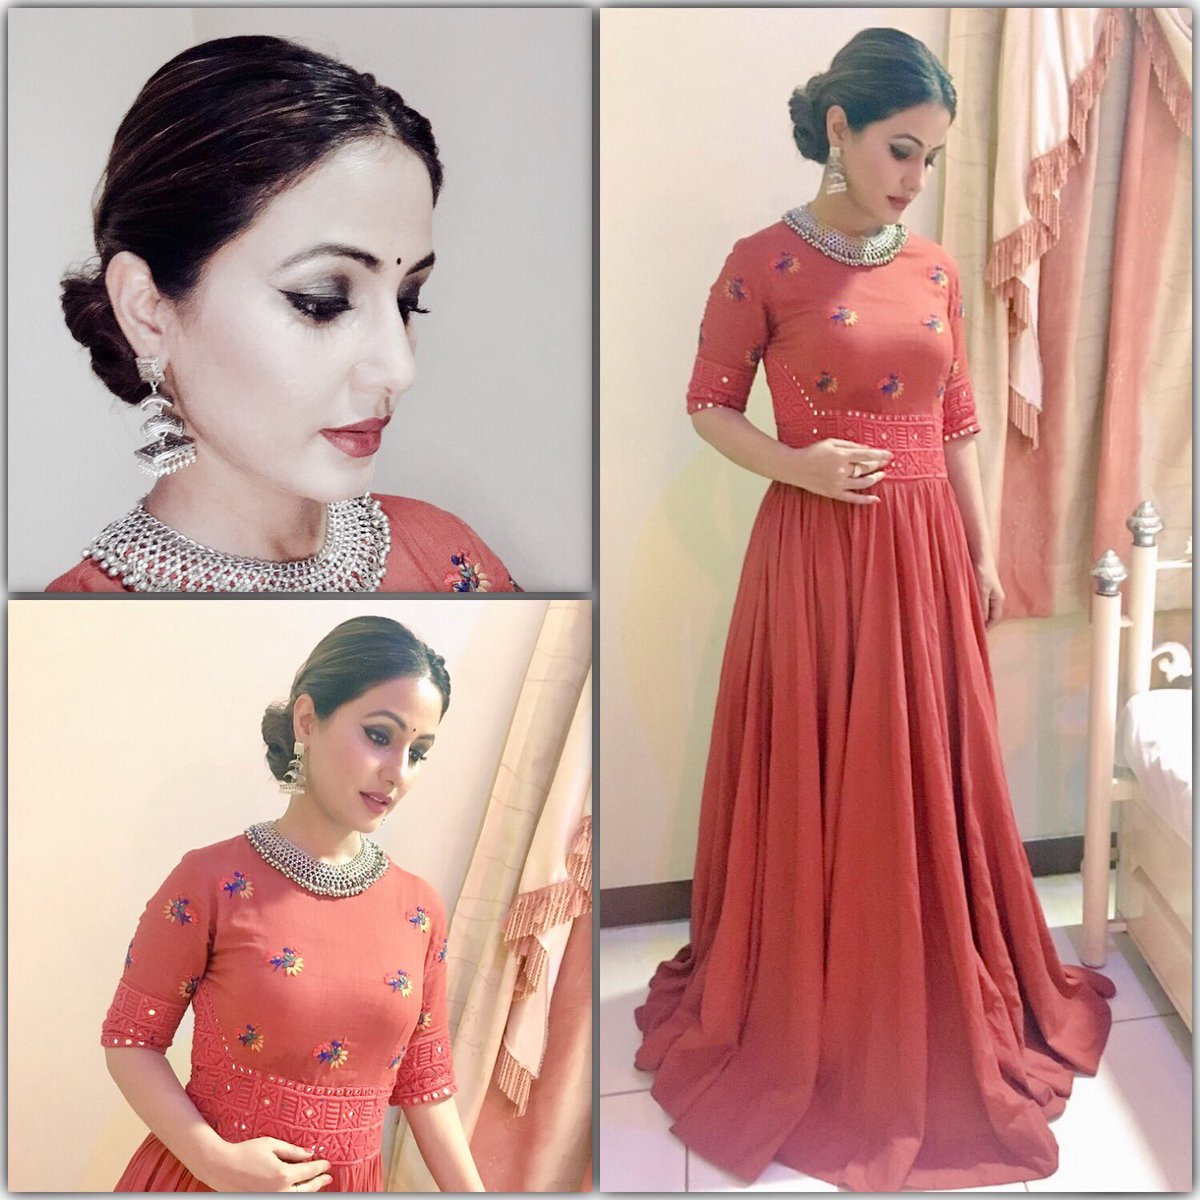 Hina Khan On Twitter Wearing Dis Natural Red Khadi Outfit Frm